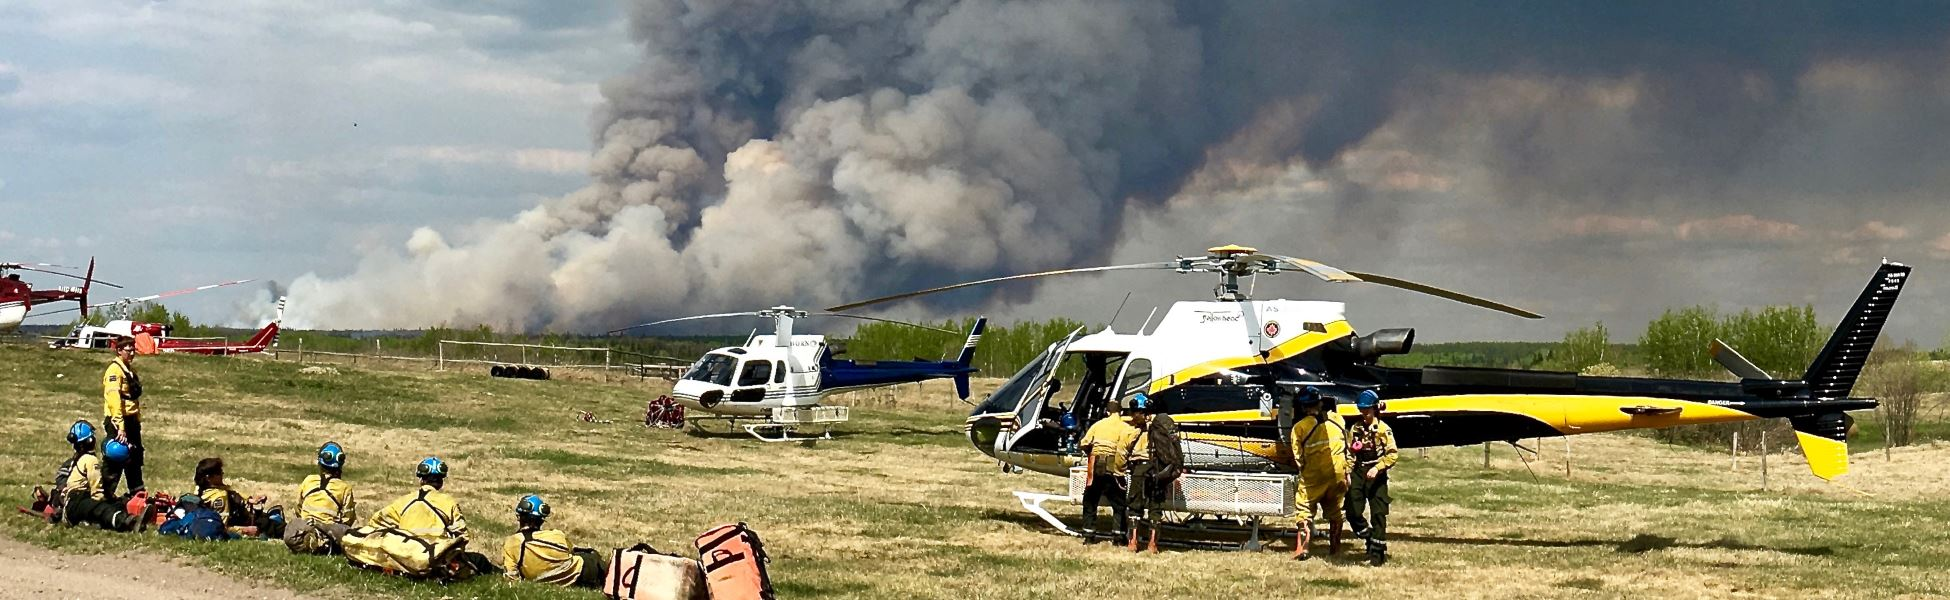 helicopter services BC firefighting wildfires 2018